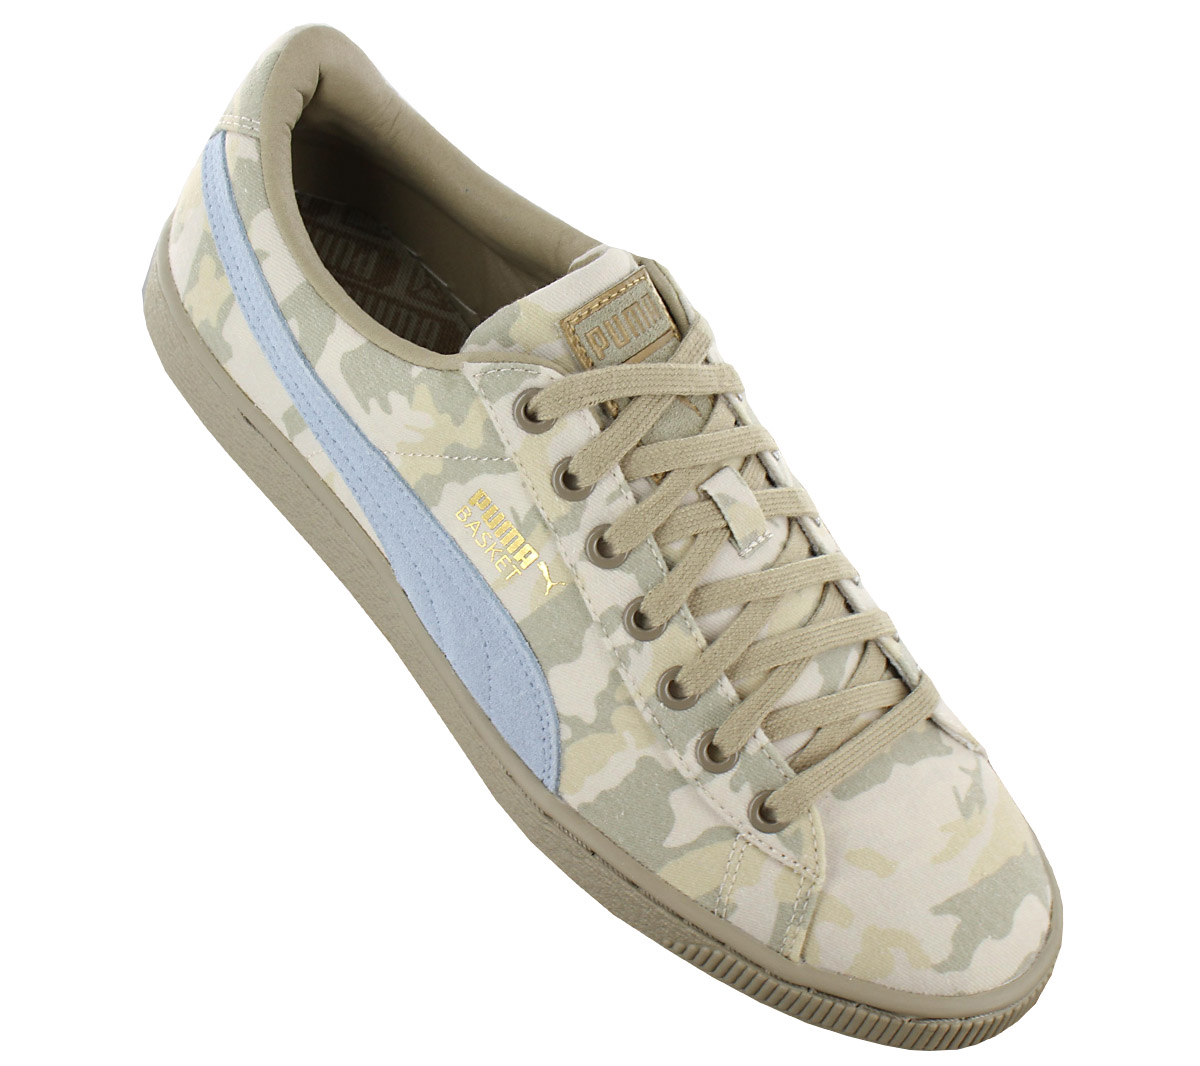 0cdc74ee77bdb Puma Basket Classic Camo Men's Sneakers Camouflage Shoes Canvas ...